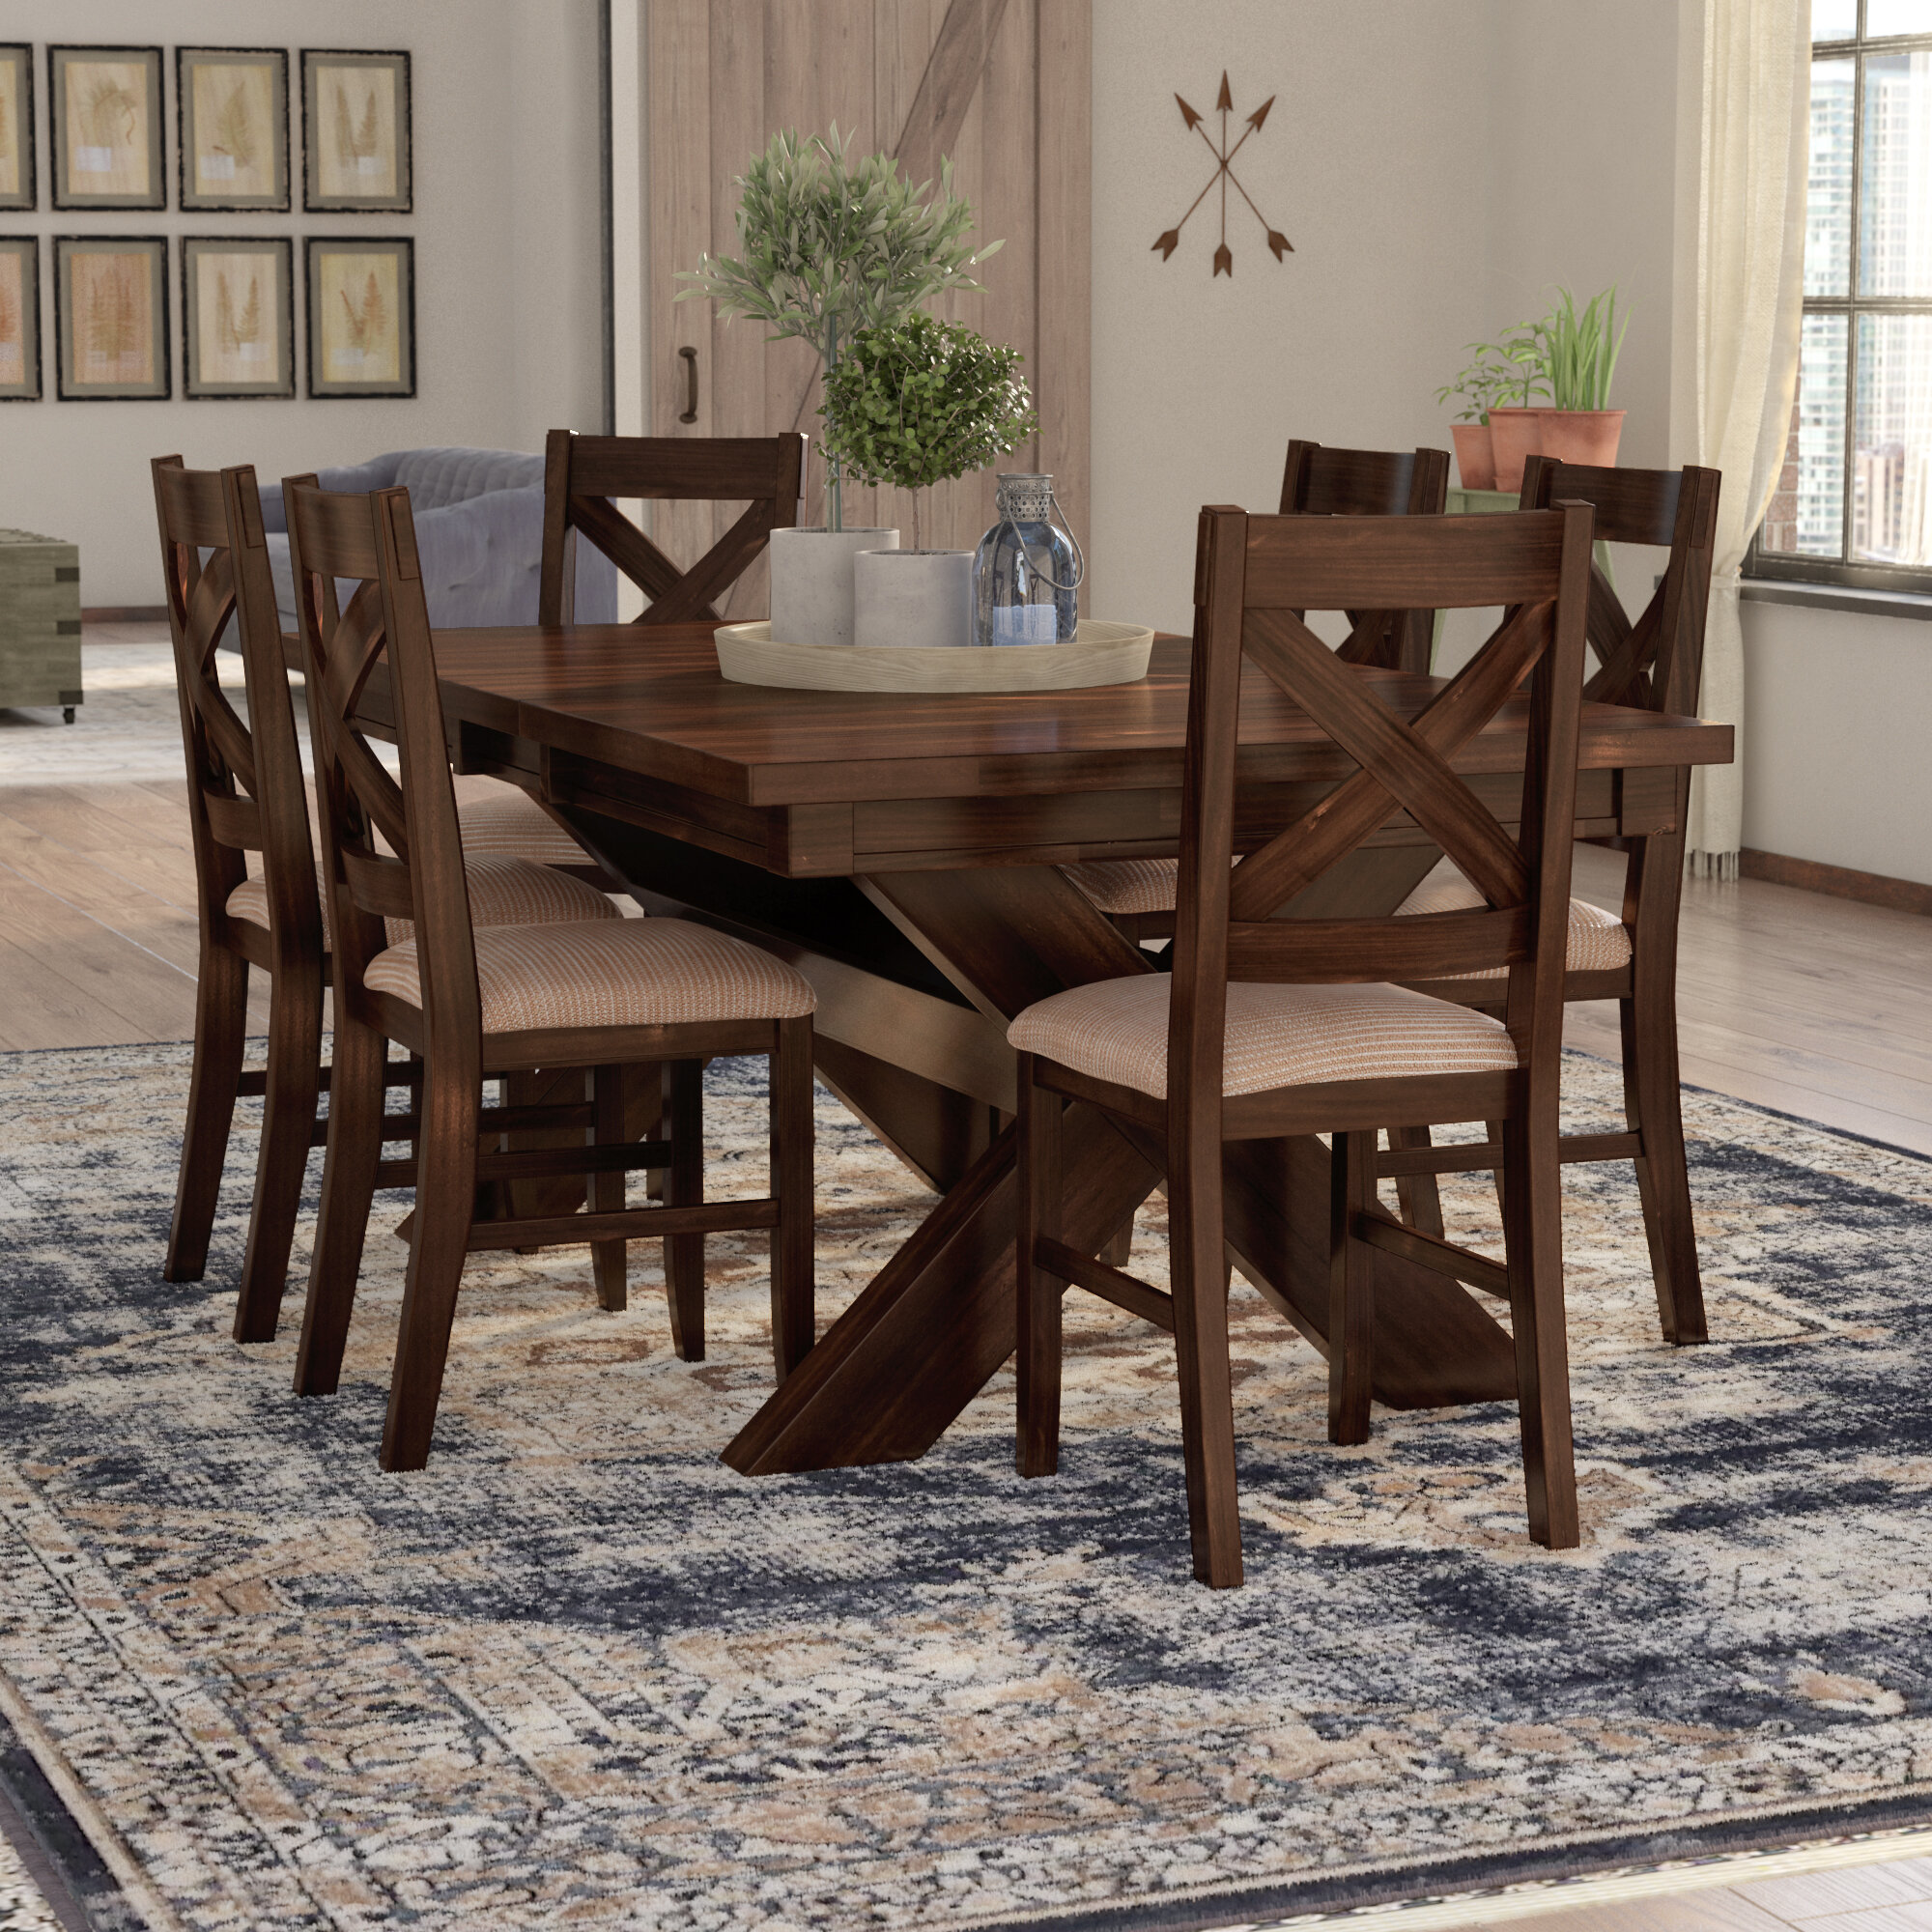 Wayfair Laurel Foundry Modern Farmhouse Isabell 7 Piece Solid Wood Dining Set